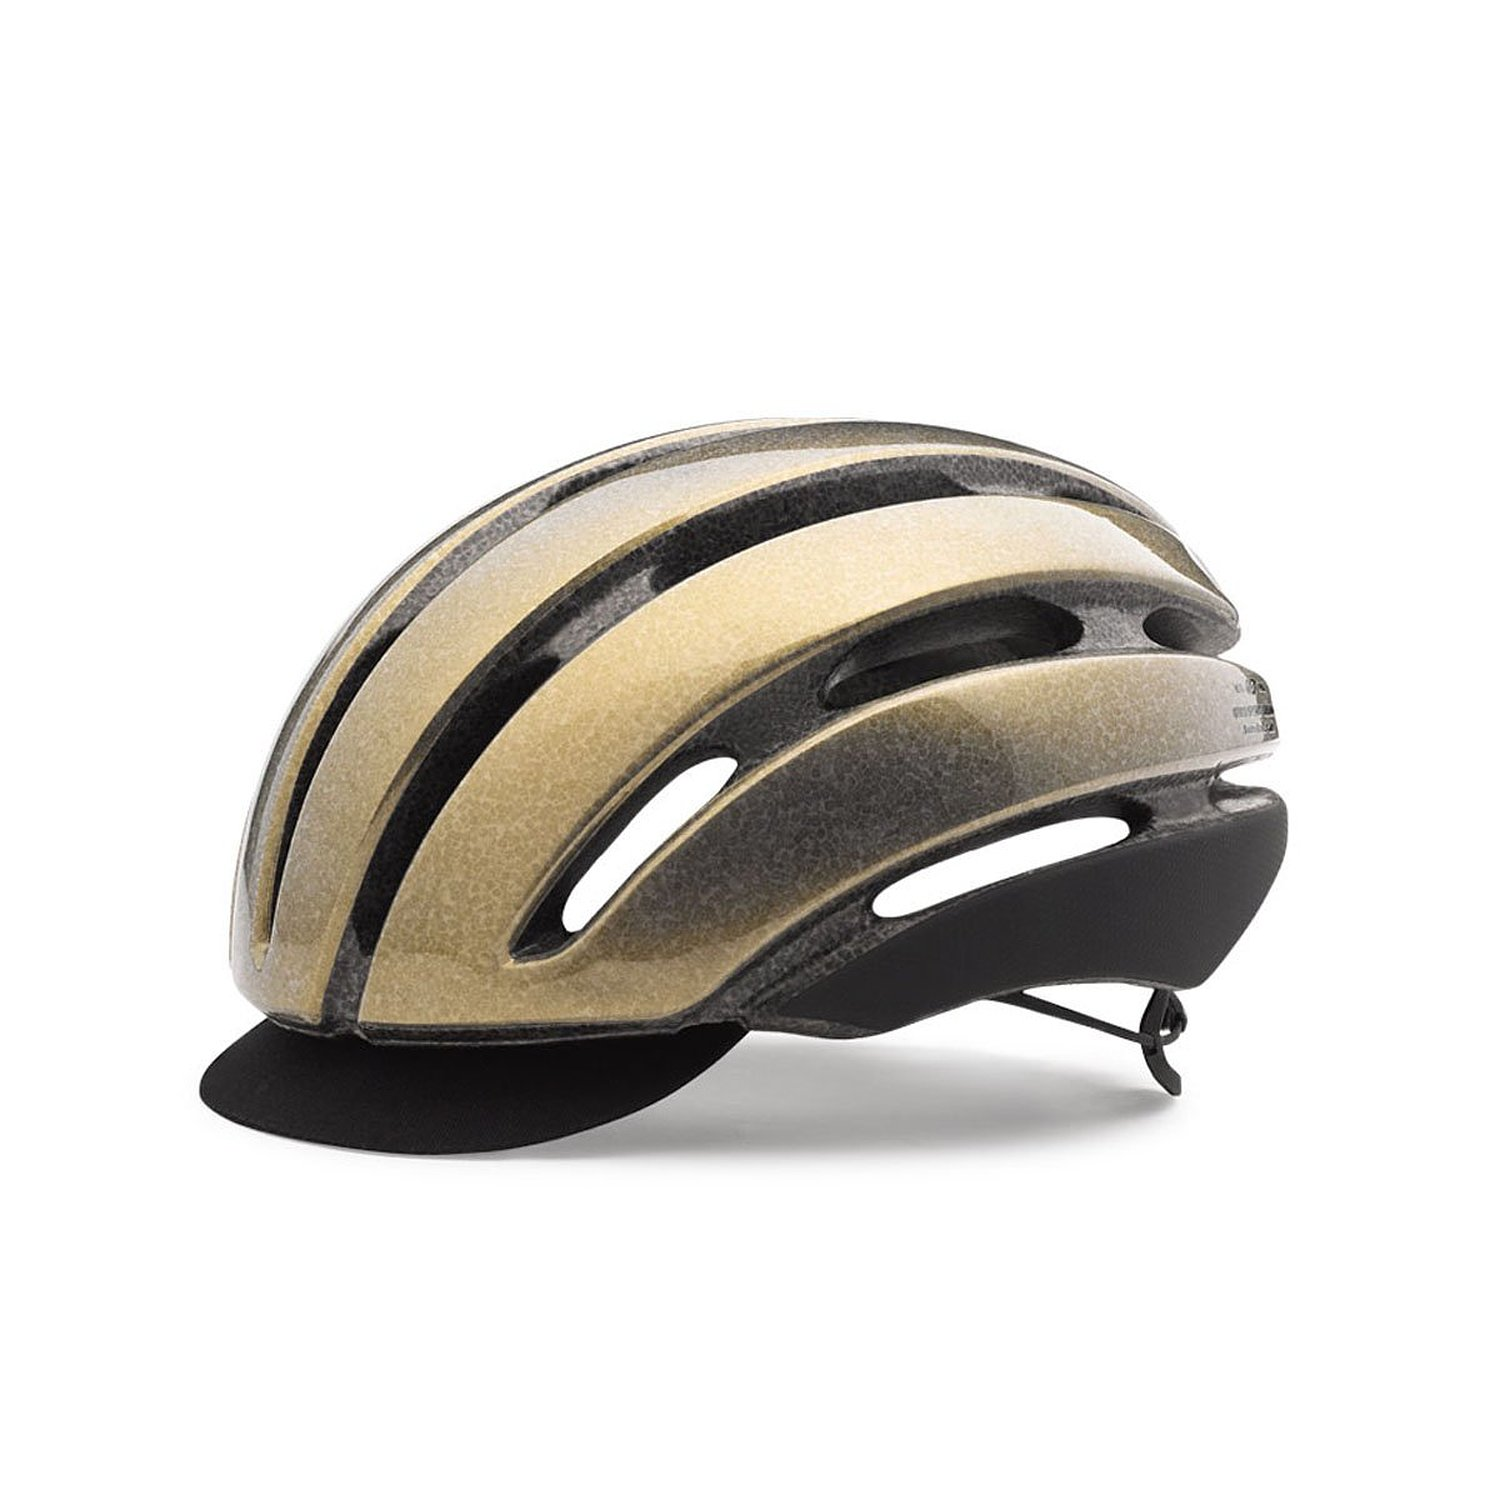 Gold Giro Bicycle Helmets